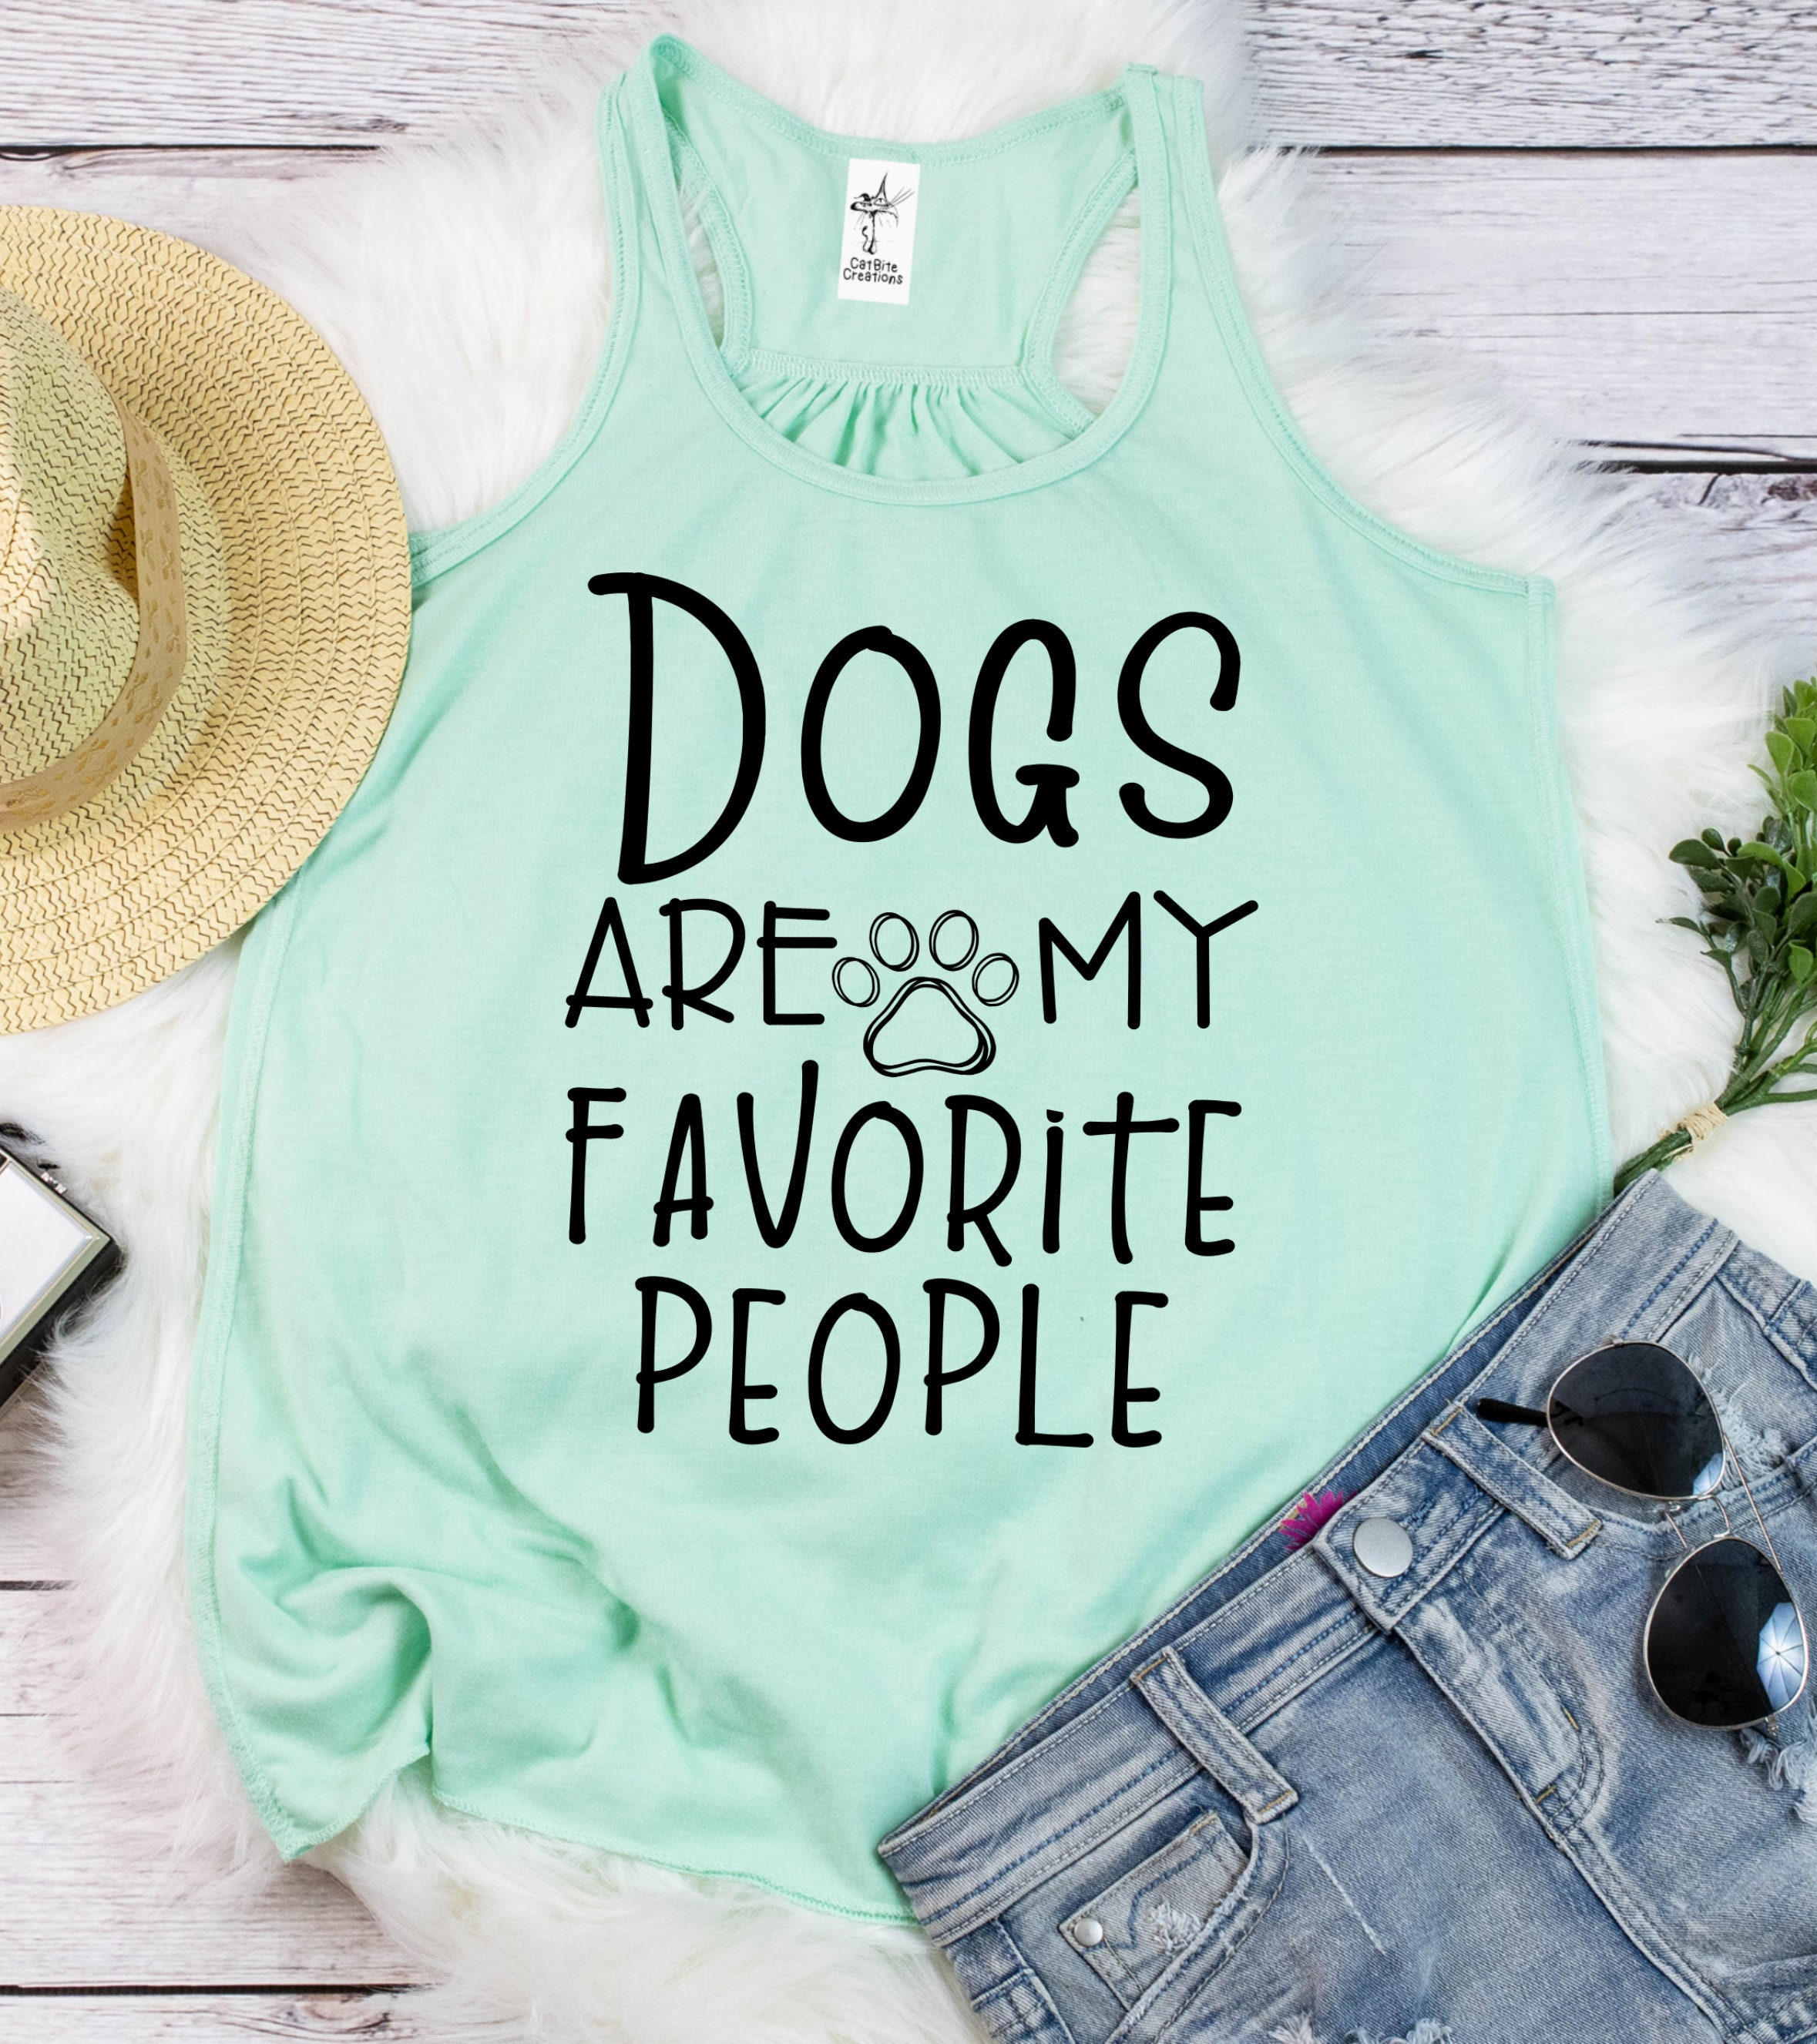 200ac1f54272 Dogs Are My Favorite People Tank Shirt, Dog Lover shirt, Dog Shirt, Dog  Lover Tank, Dog Mom Shirt